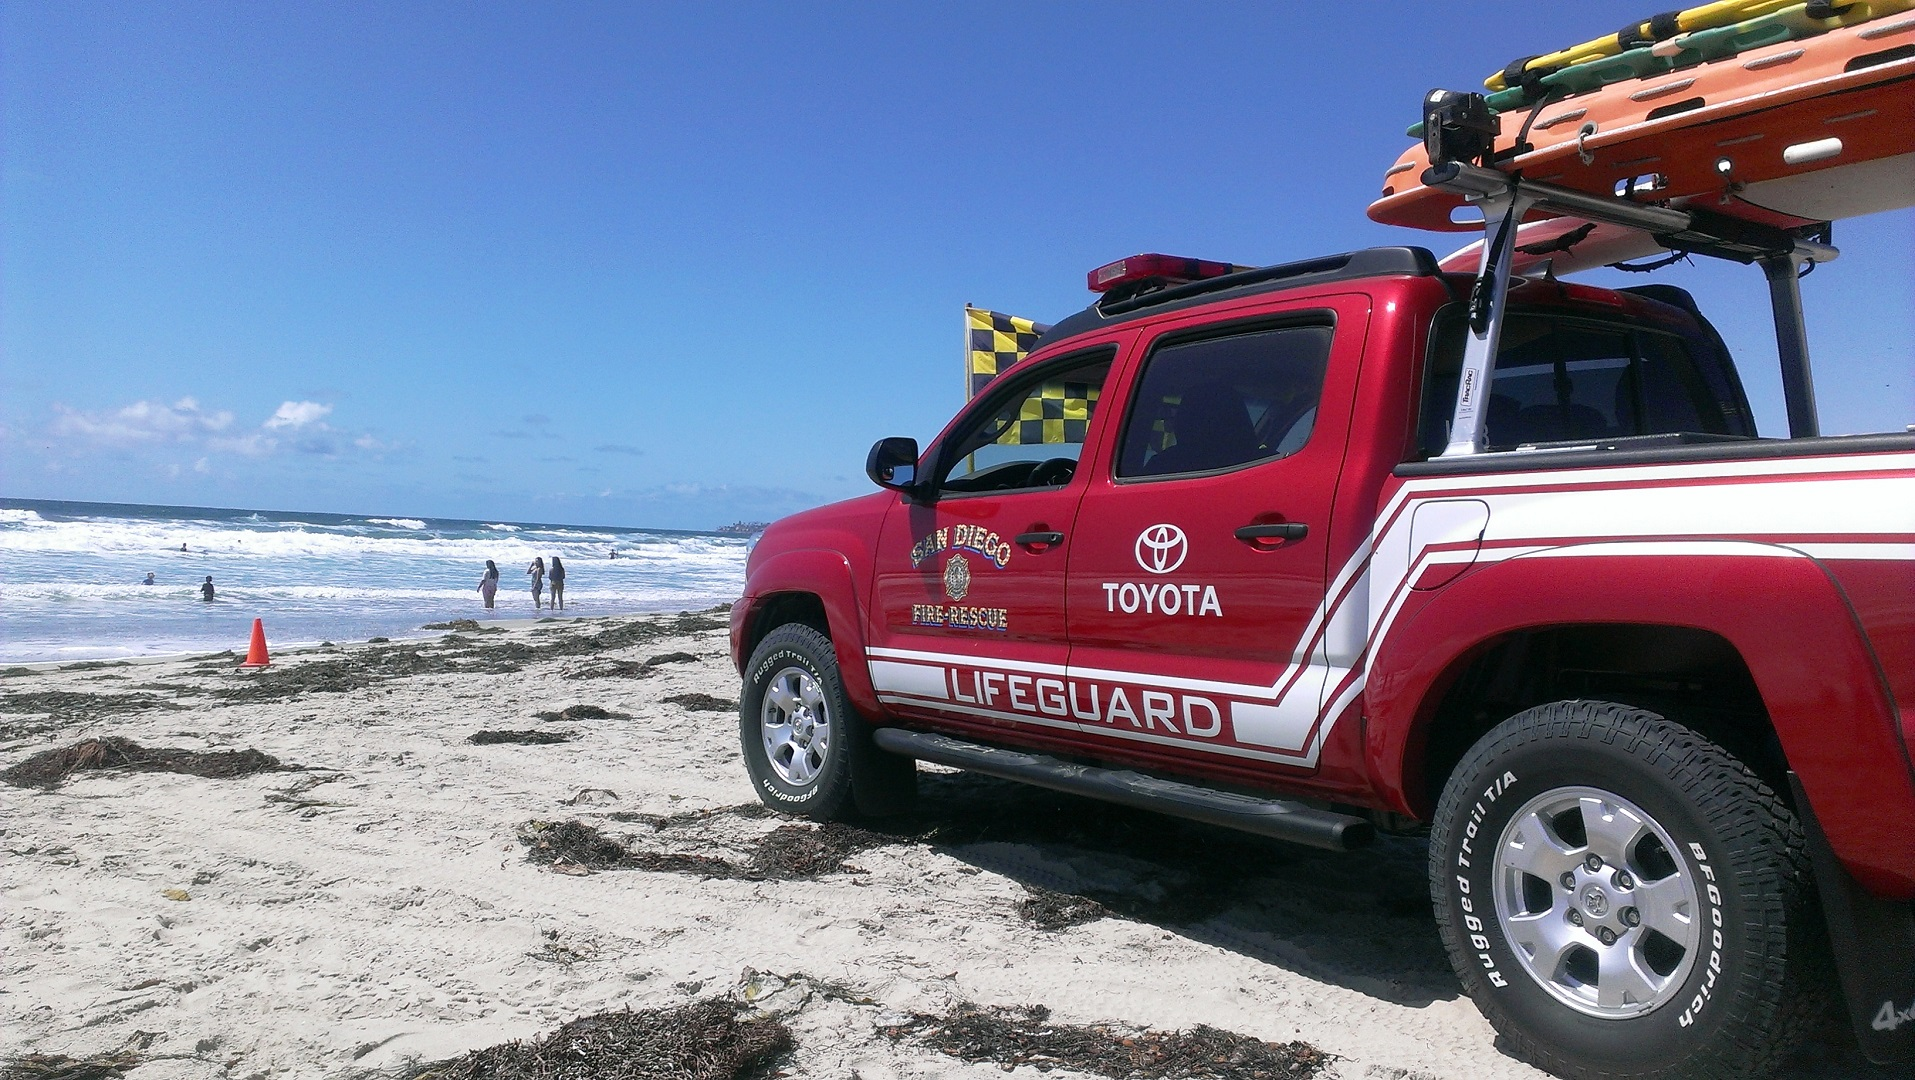 San Diego Toyota >> Toyota Aiding San Diego Lifeguards in Beach Safety Promotion - autoevolution